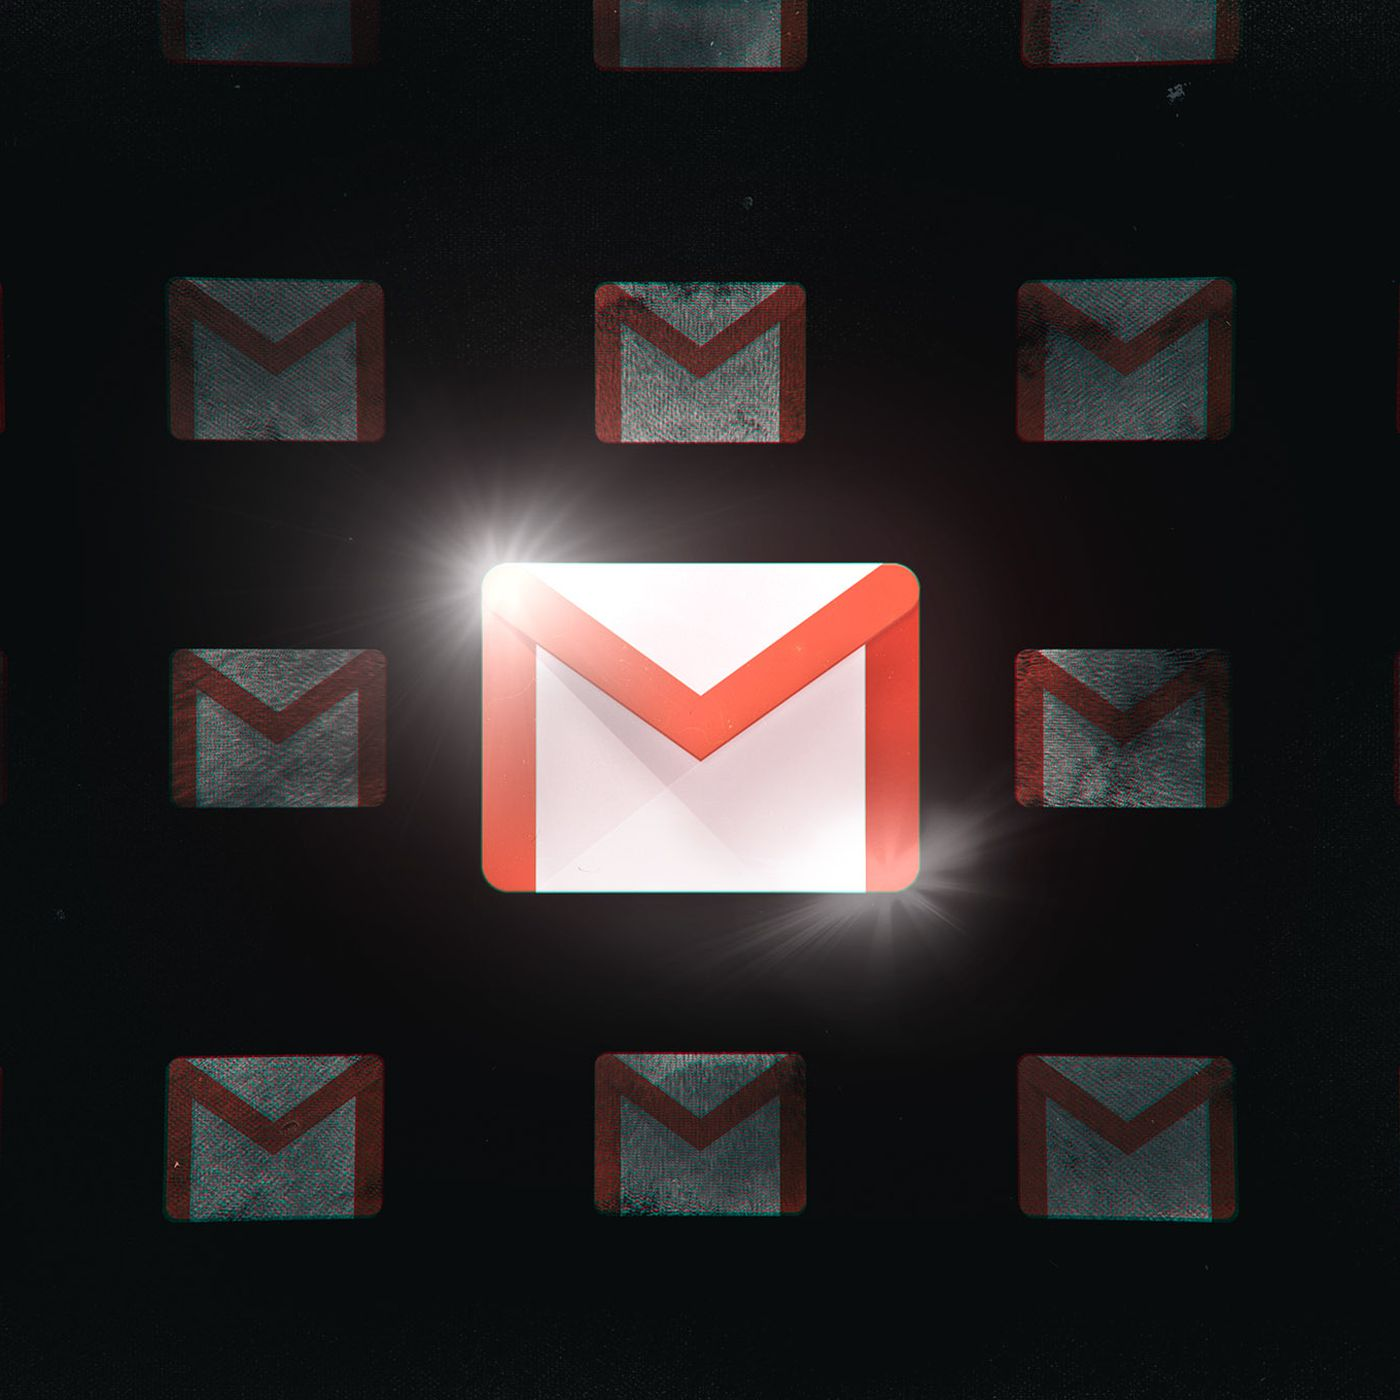 Google finally adds image blocking to Gmail on the iPhone